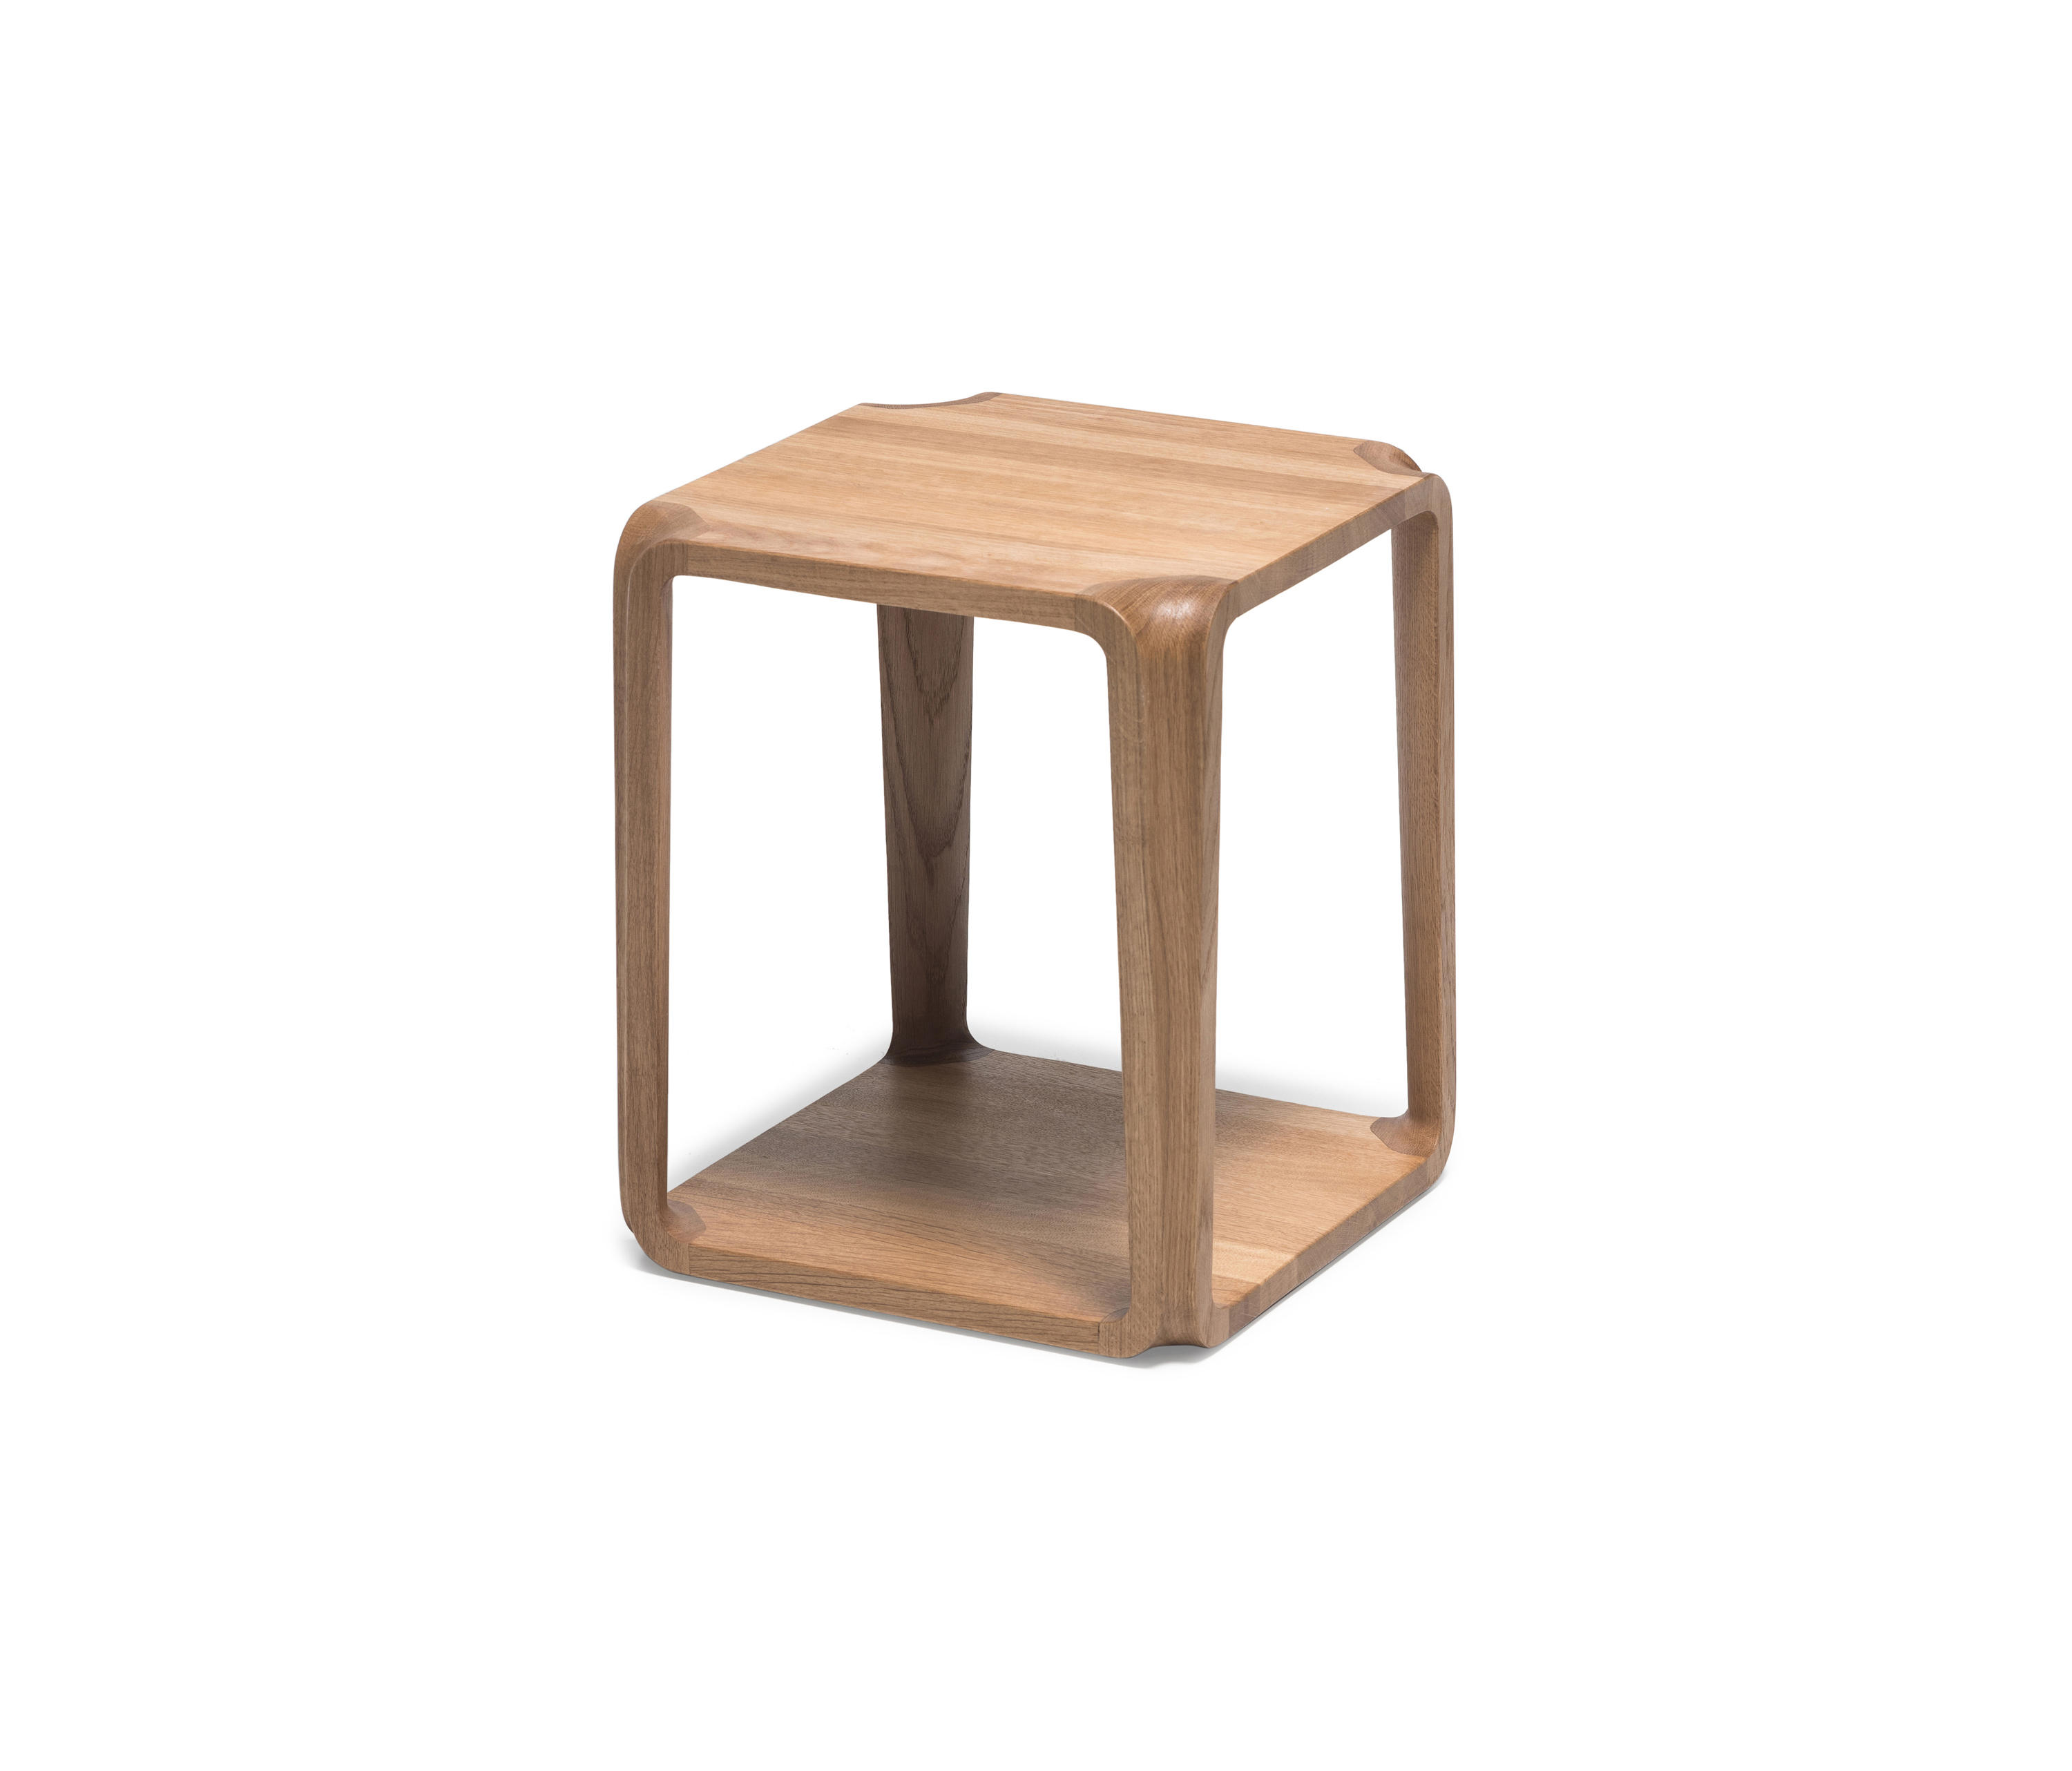 PRIMUM SIDE TABLE Side tables from MSWOOD Architonic